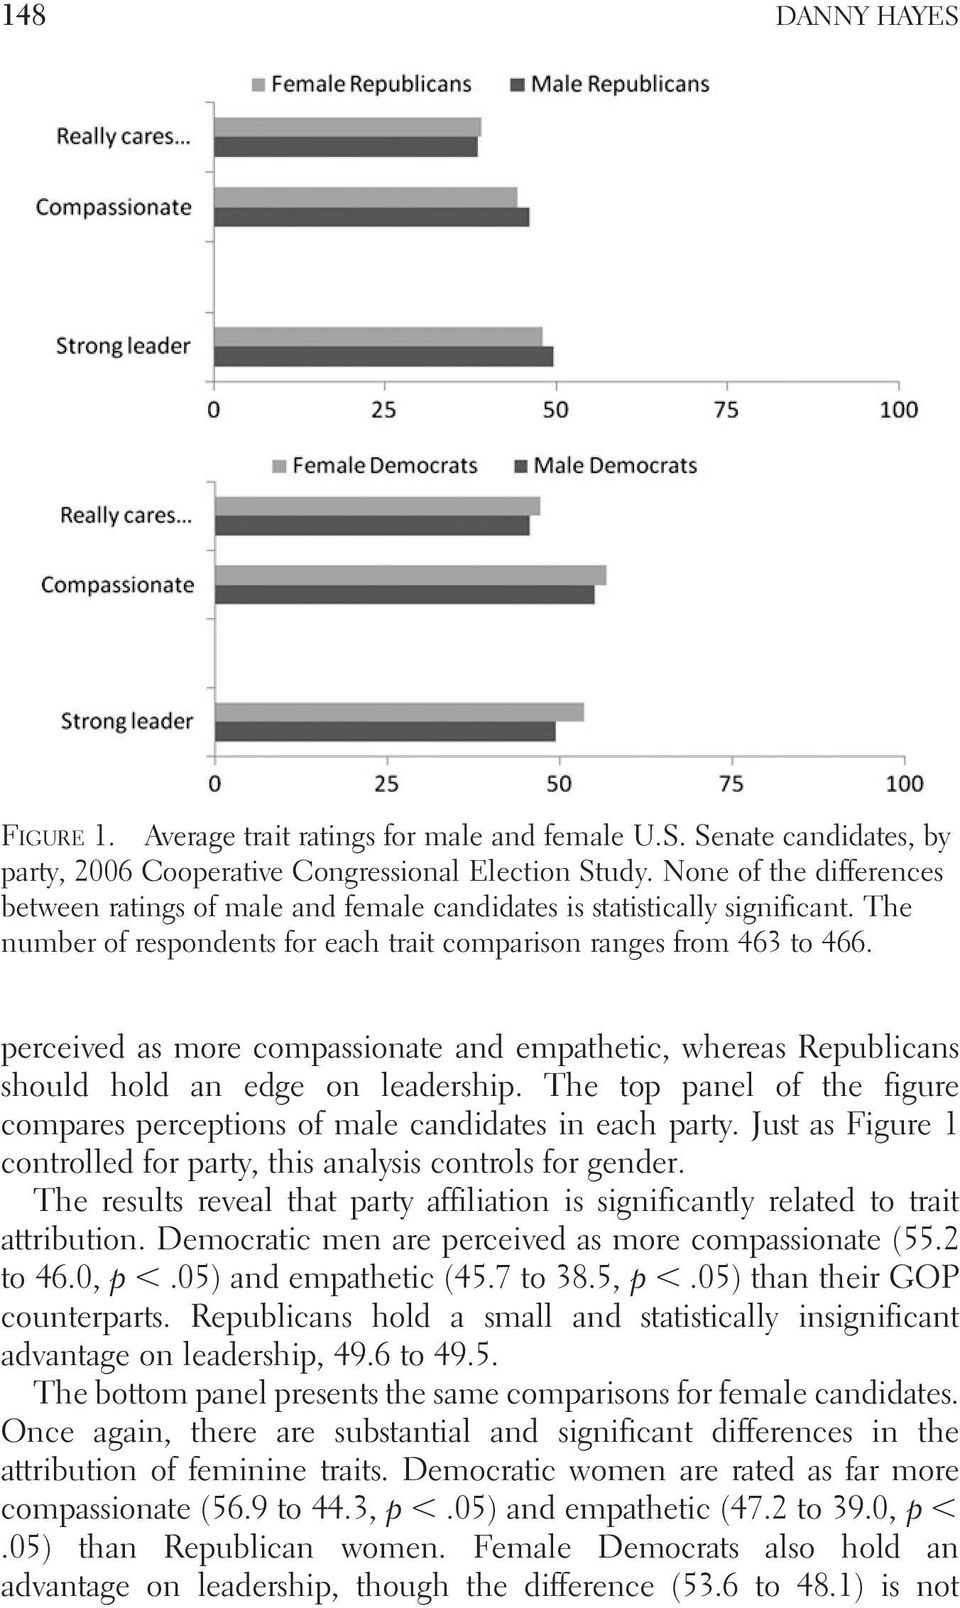 perceived as more compassionate and empathetic, whereas Republicans should hold an edge on leadership. The top panel of the figure compares perceptions of male candidates in each party.